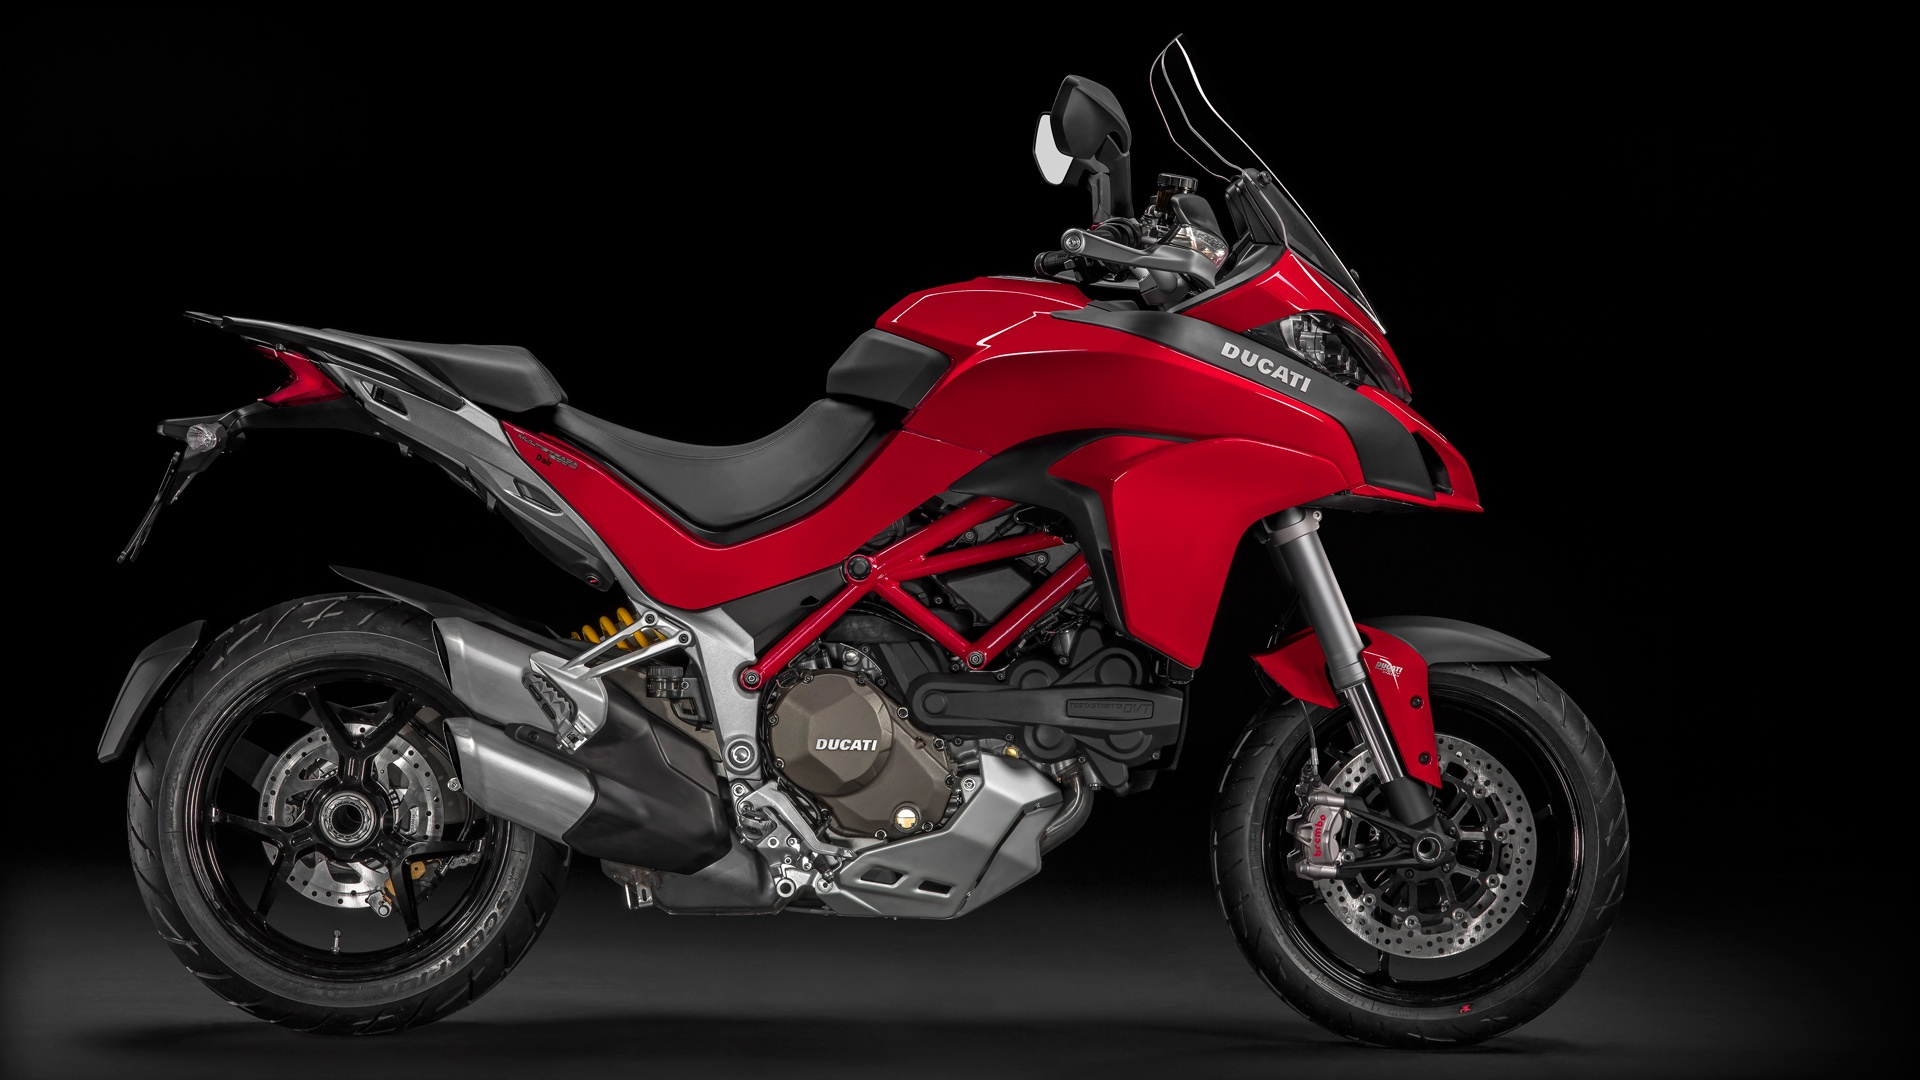 2017 Ducati Multistrada 1200 S D Air for sale at Ducati Stoke, Staffordshire, Scotland